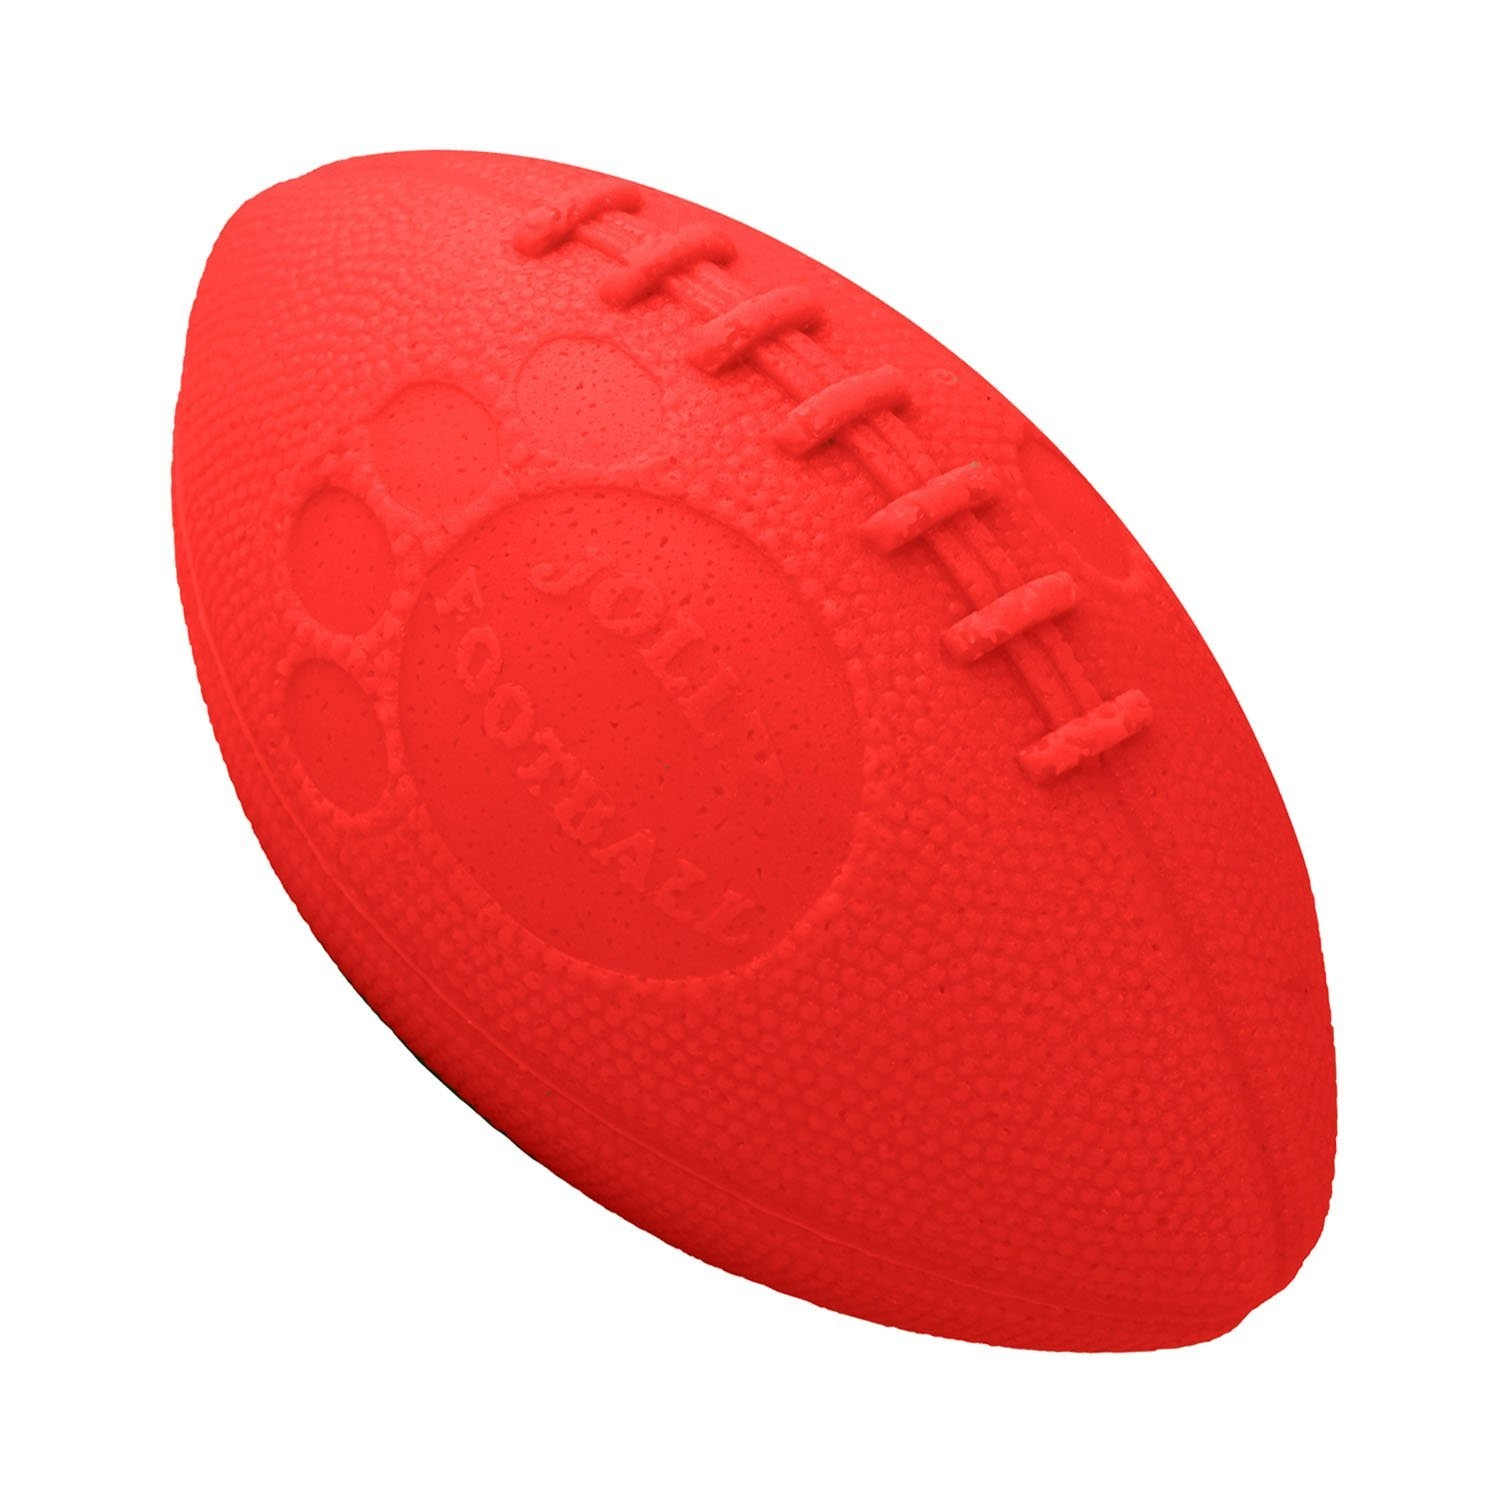 Jolly Pet Jolly Football Dog Toy Orange